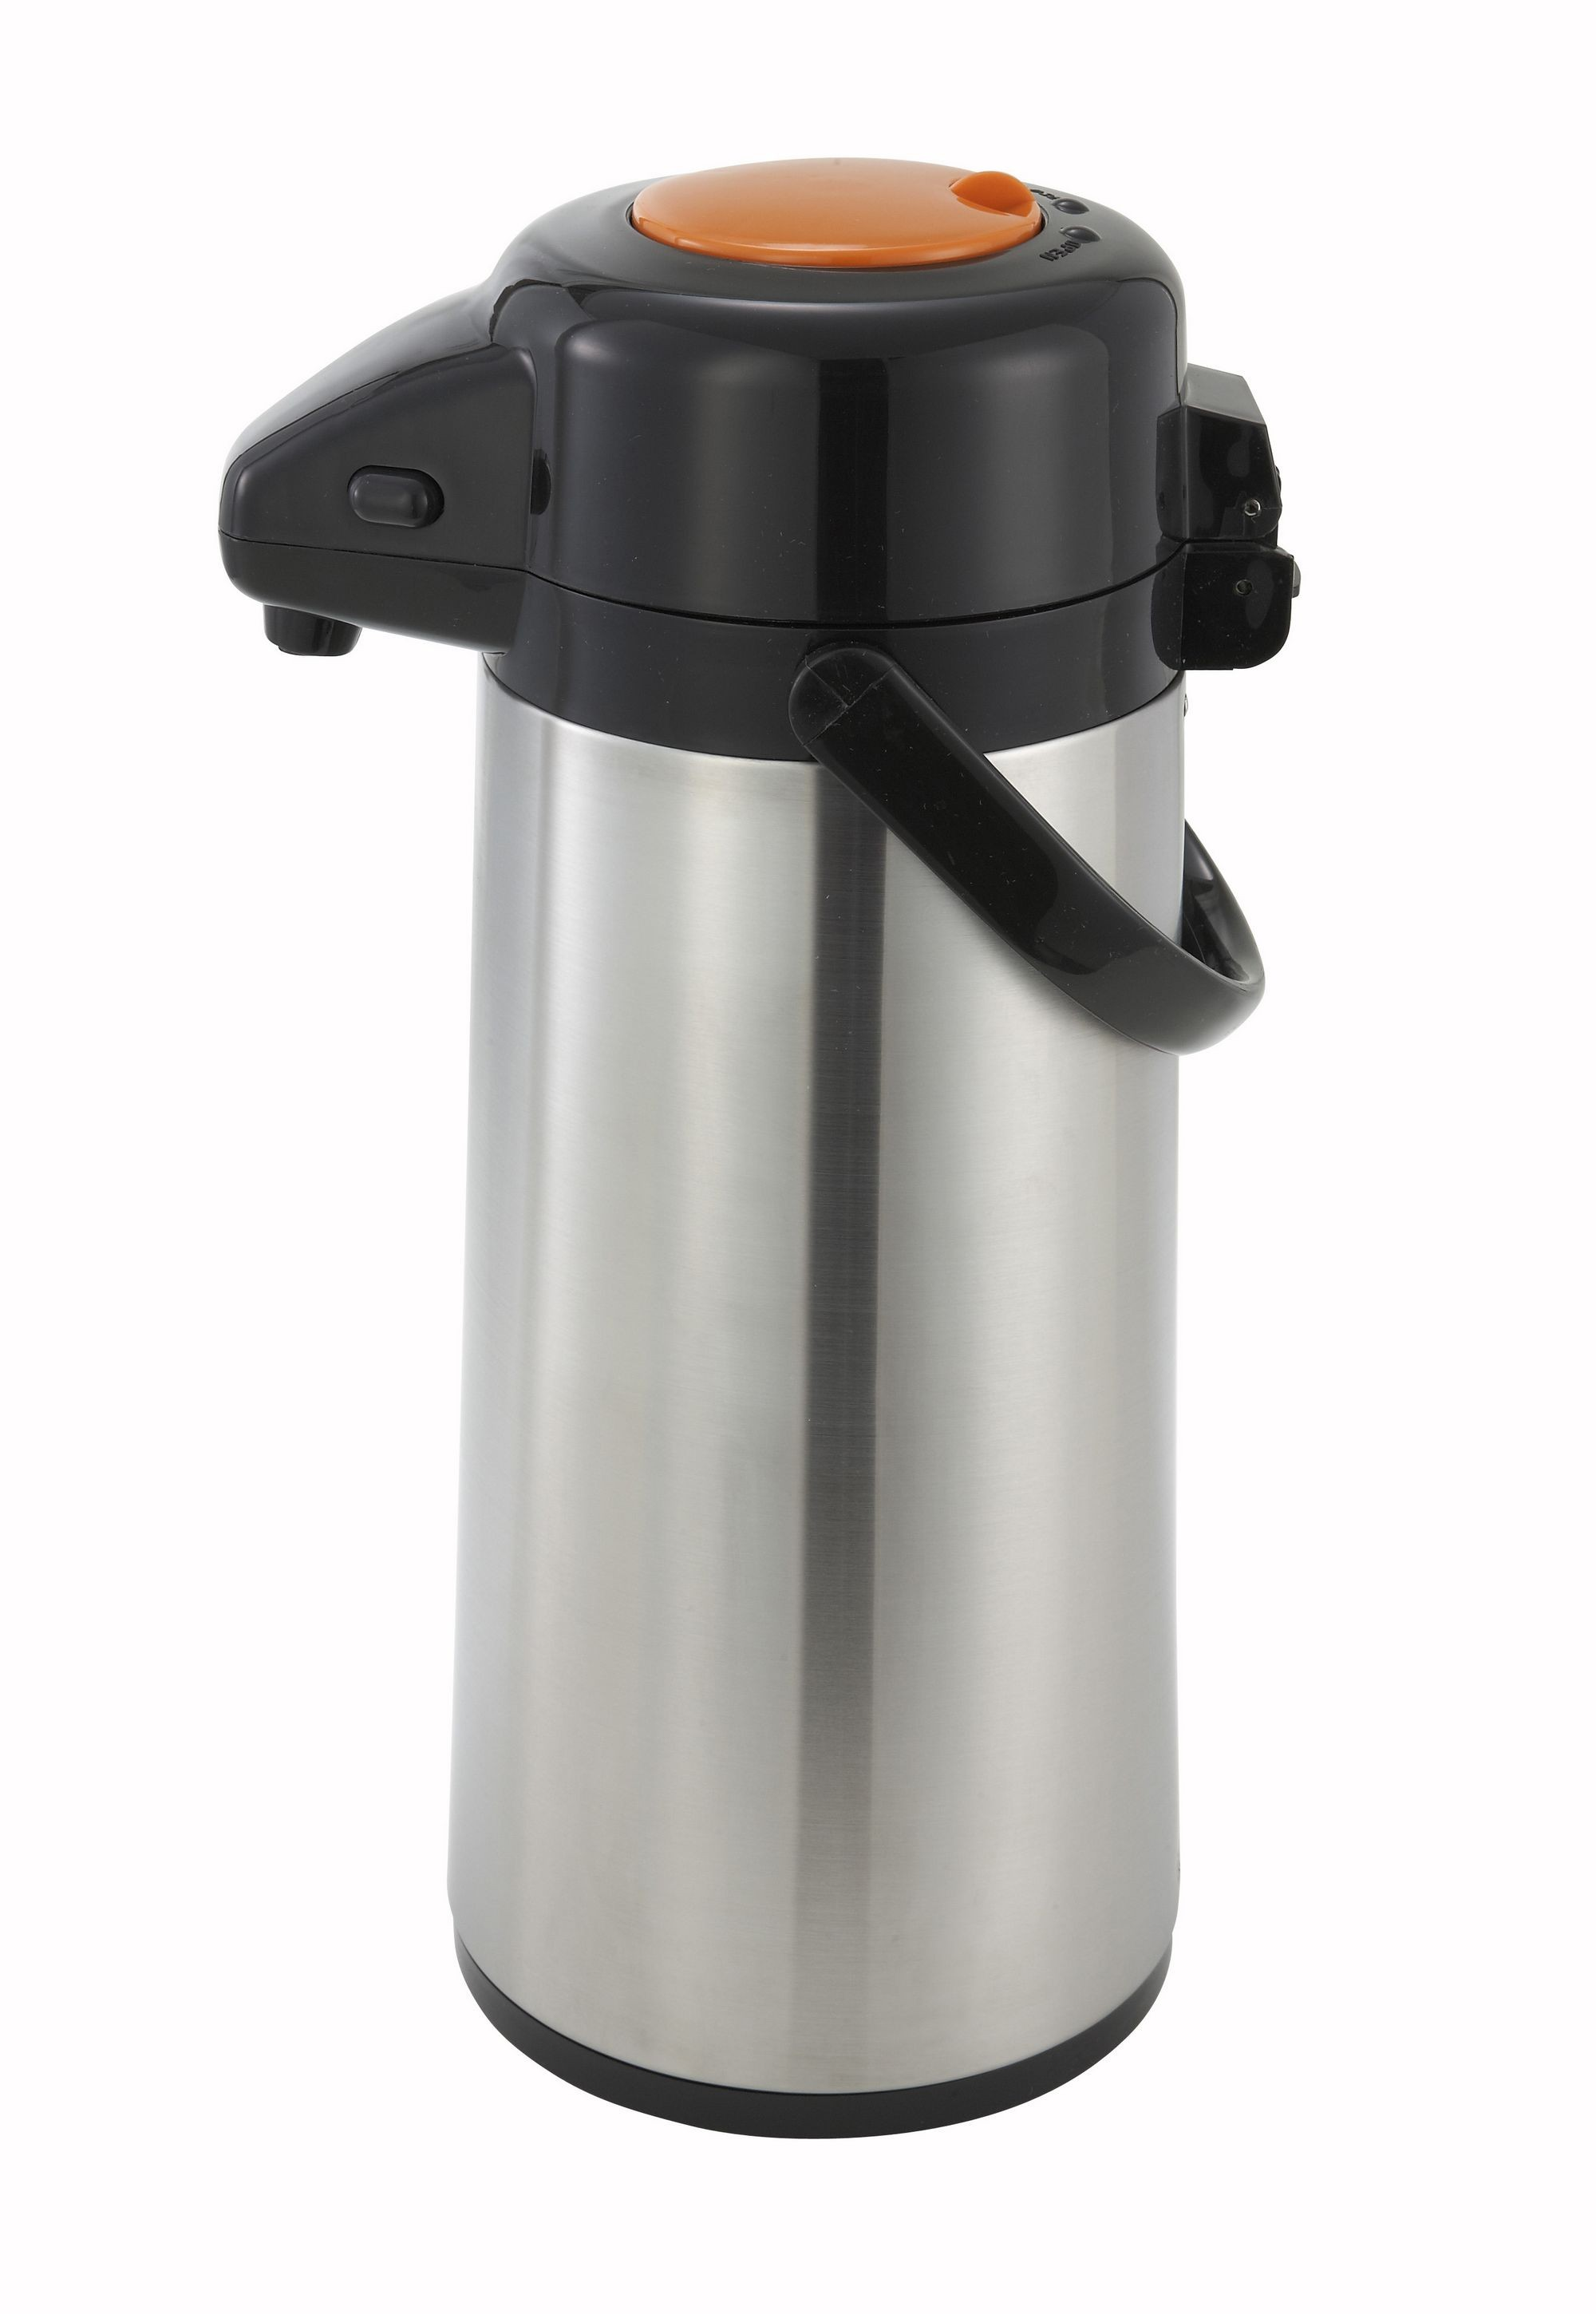 Glass-Lined Steel Body 2.2-L Push-Button Decaf Air Pot (10-24 Hr Heat)